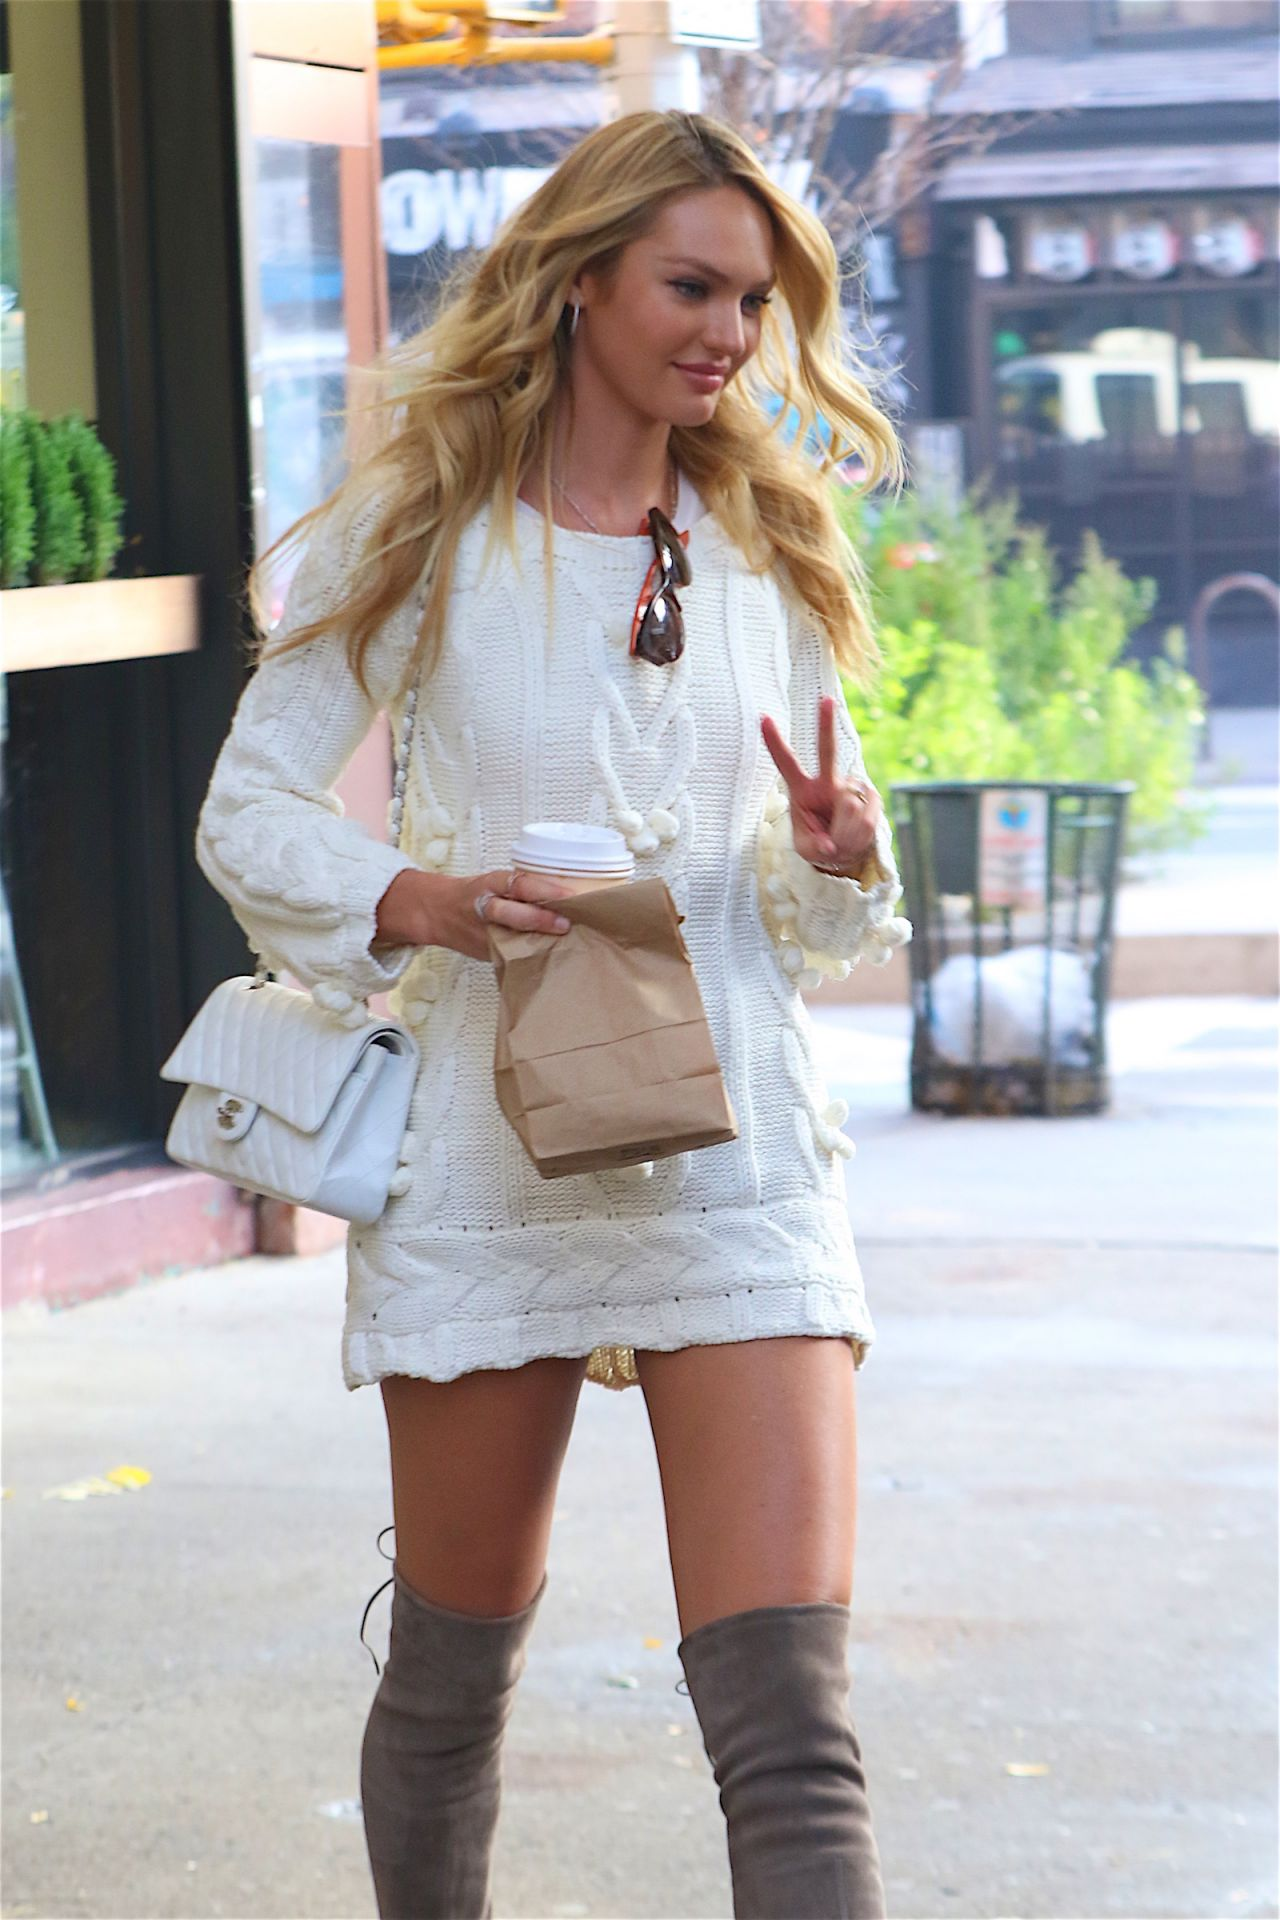 candice swanepoel visits the today show in nyc